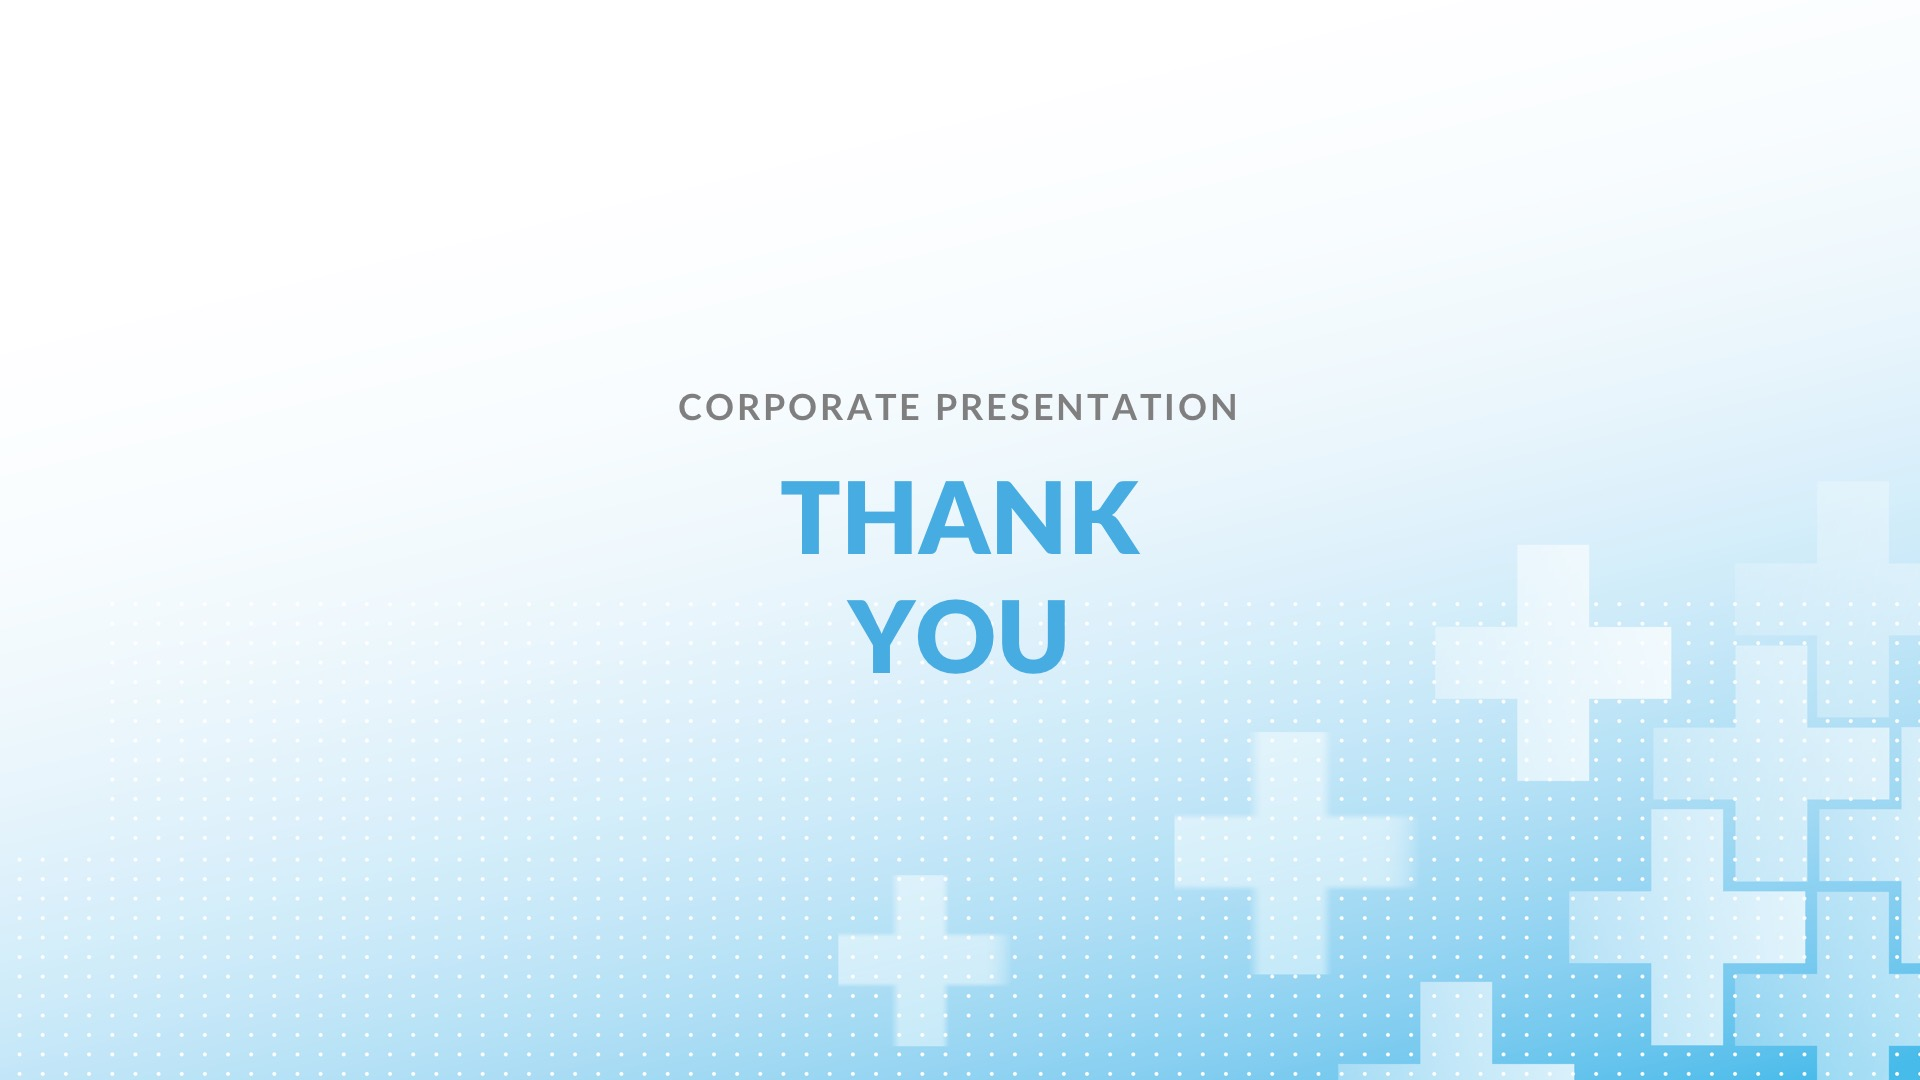 Clinic Medical PowerPoint Template, Google Slides, Keynote